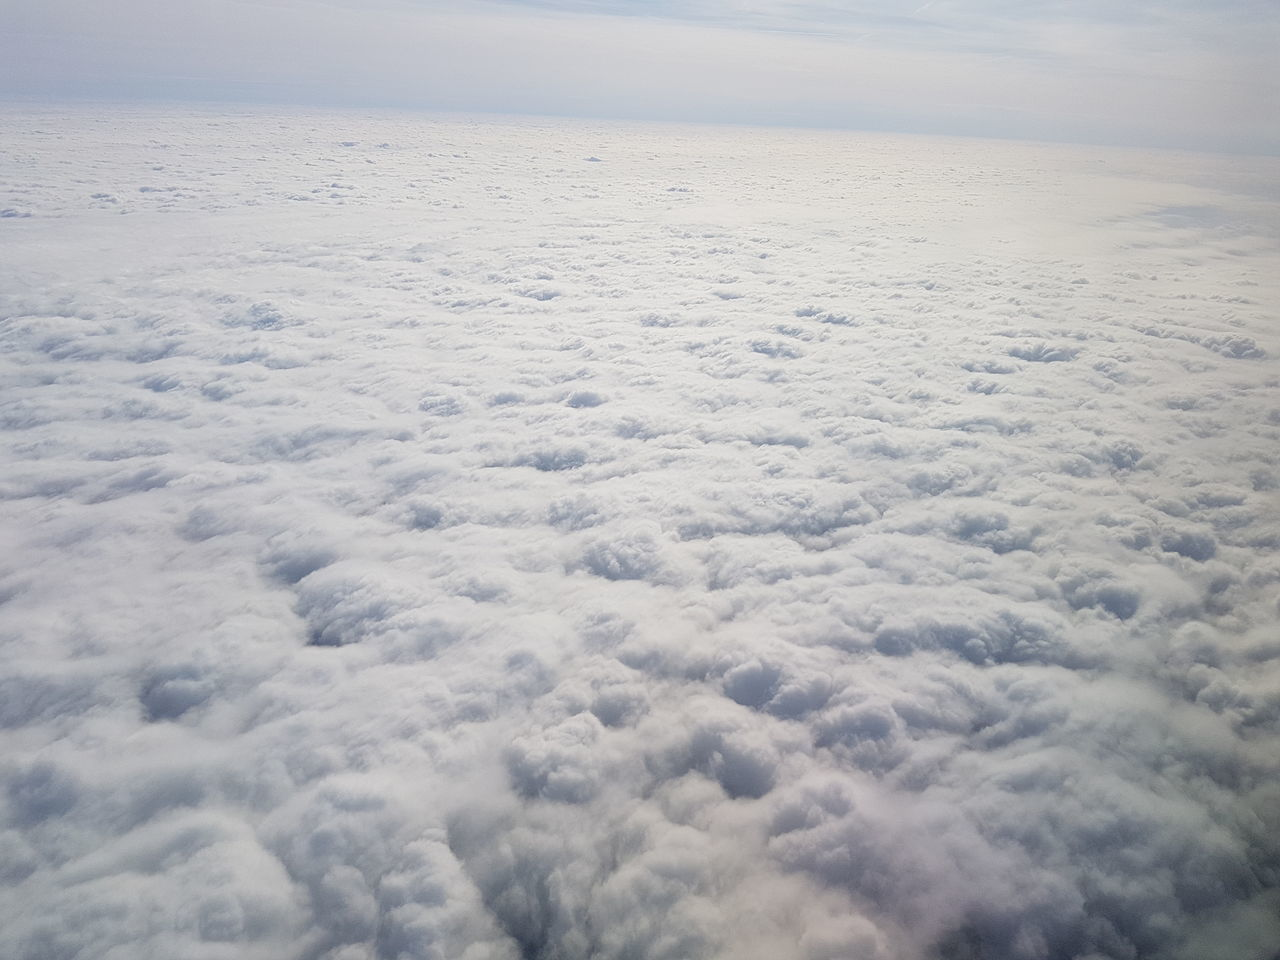 cloud - sky, nature, cloudscape, weather, sky, beauty in nature, tranquility, no people, outdoors, day, backgrounds, scenics, aerial view, flying, airplane